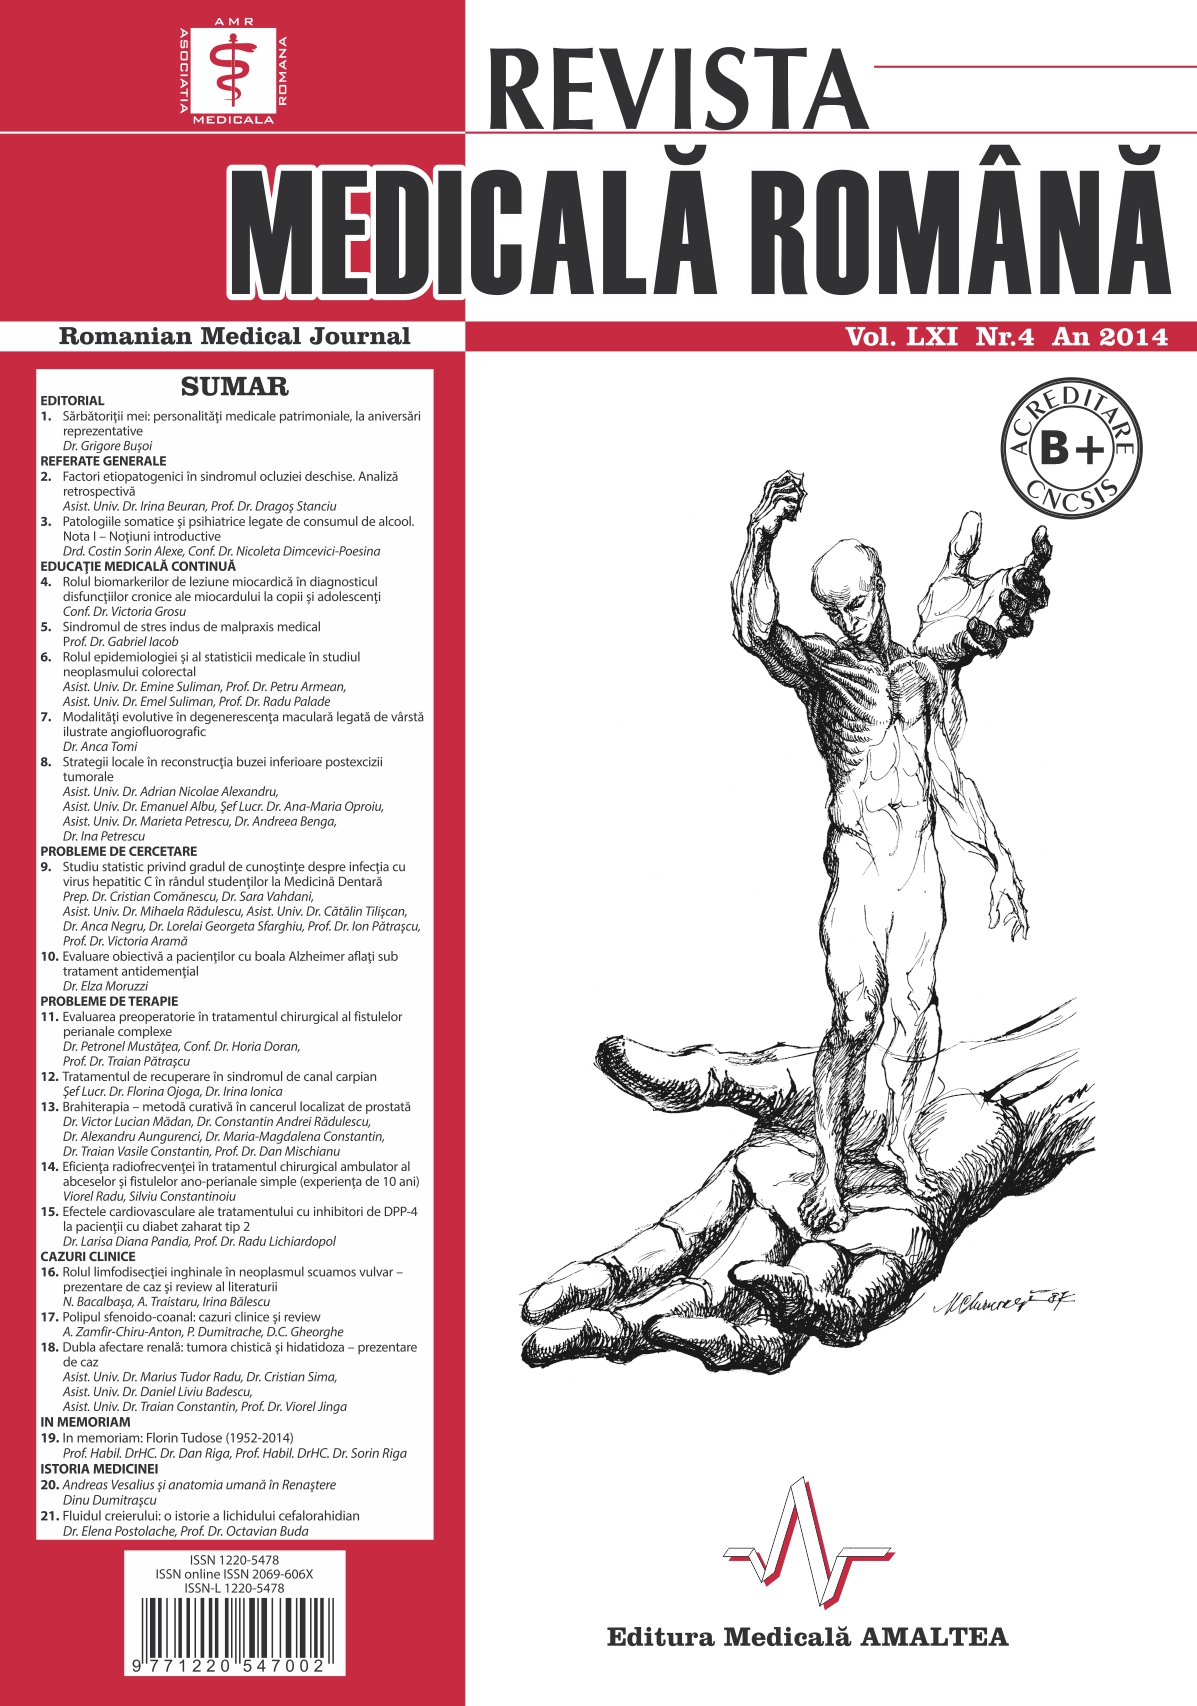 REVISTA MEDICALA ROMANA - Romanian Medical Journal, Vol. LXI, No. 4, Year 2014